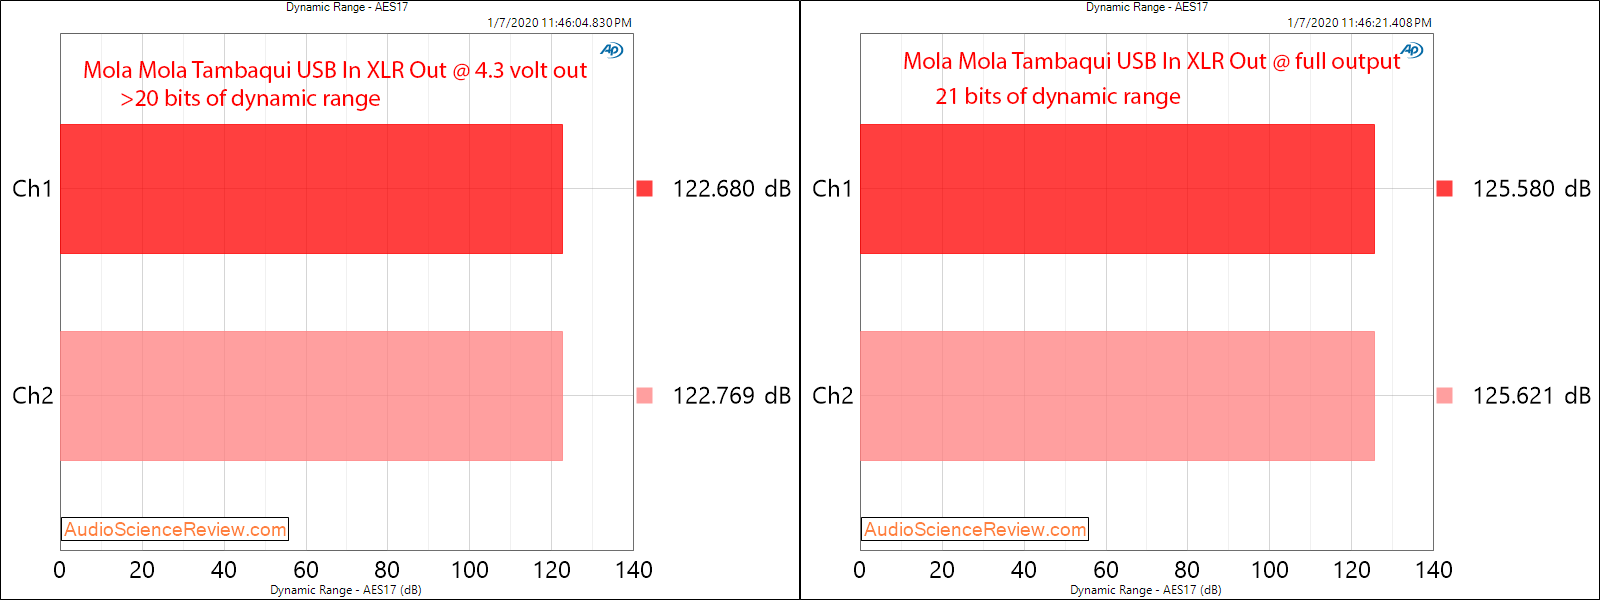 Mola Mola Tambaqui USB DAC Streamer Headphone Amplifier Dynamic Range Audio Measurements.png